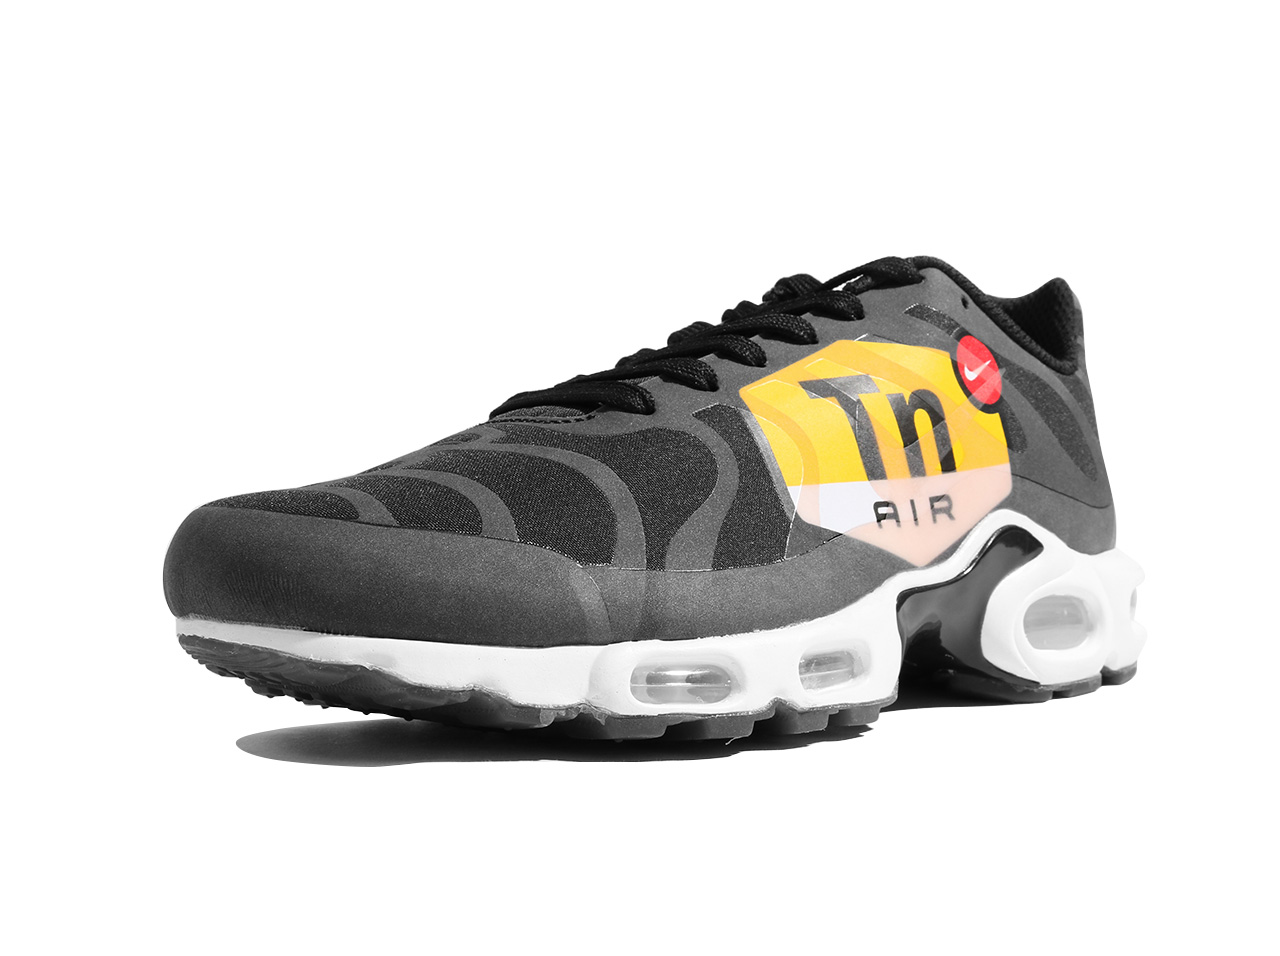 nike_air_max_plus_ns_gpx_aj0877_001